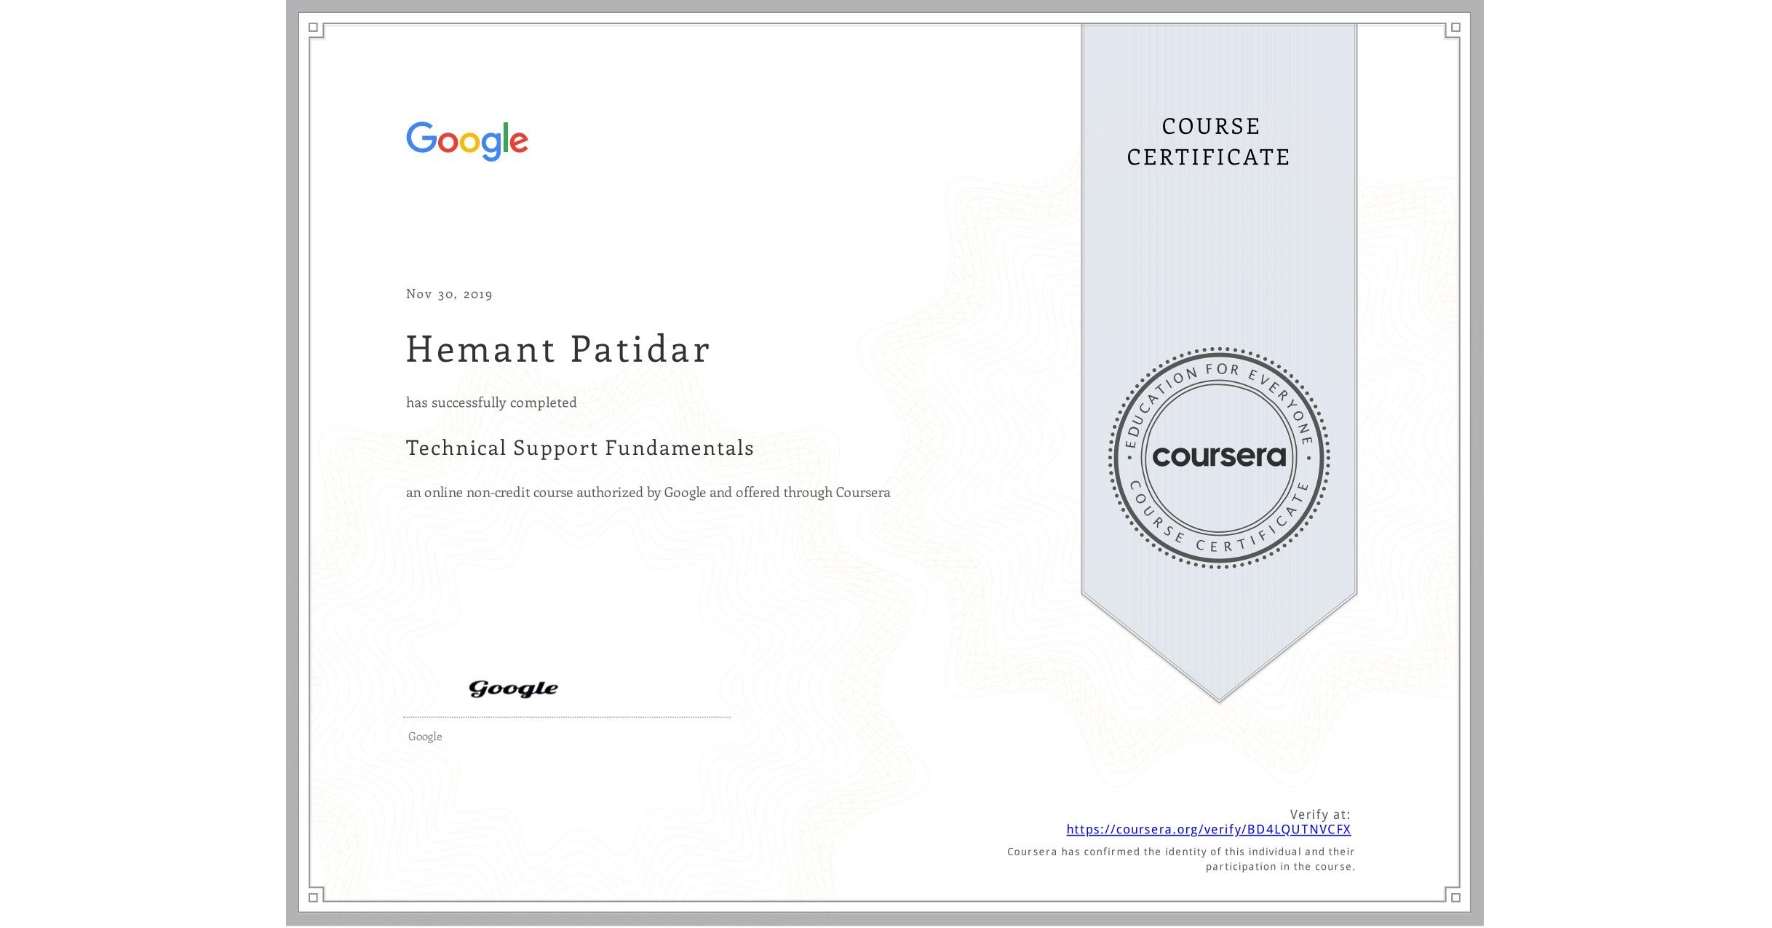 View certificate for Hemant Patidar, Technical Support Fundamentals, an online non-credit course authorized by Google and offered through Coursera